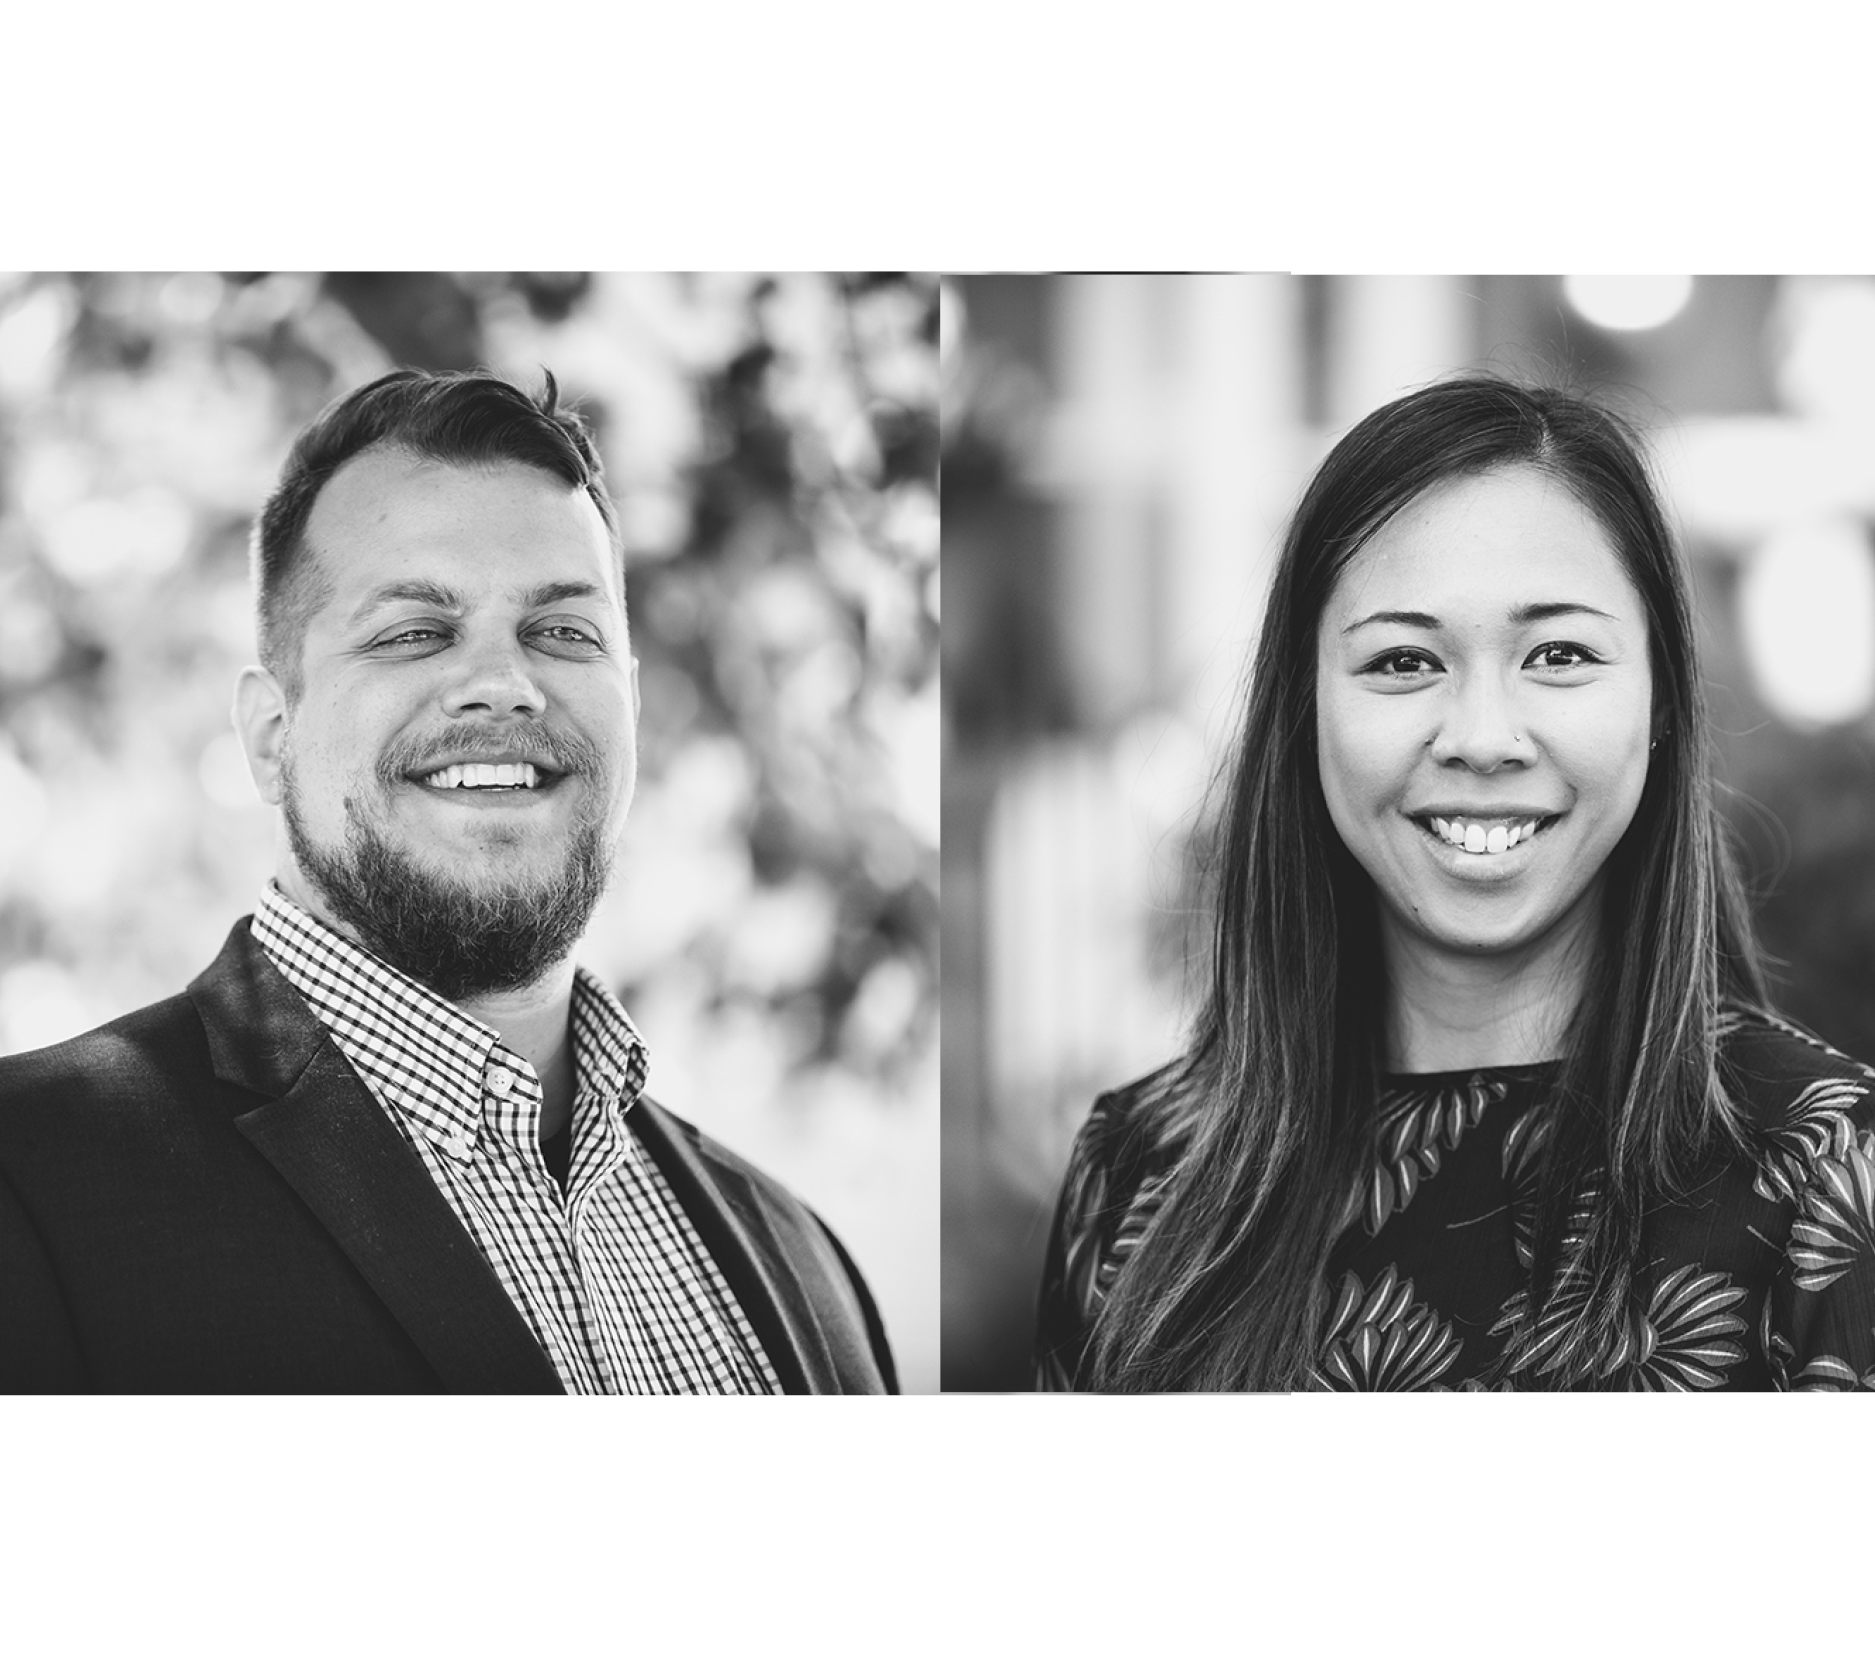 A happy welcome to two new members of our team!